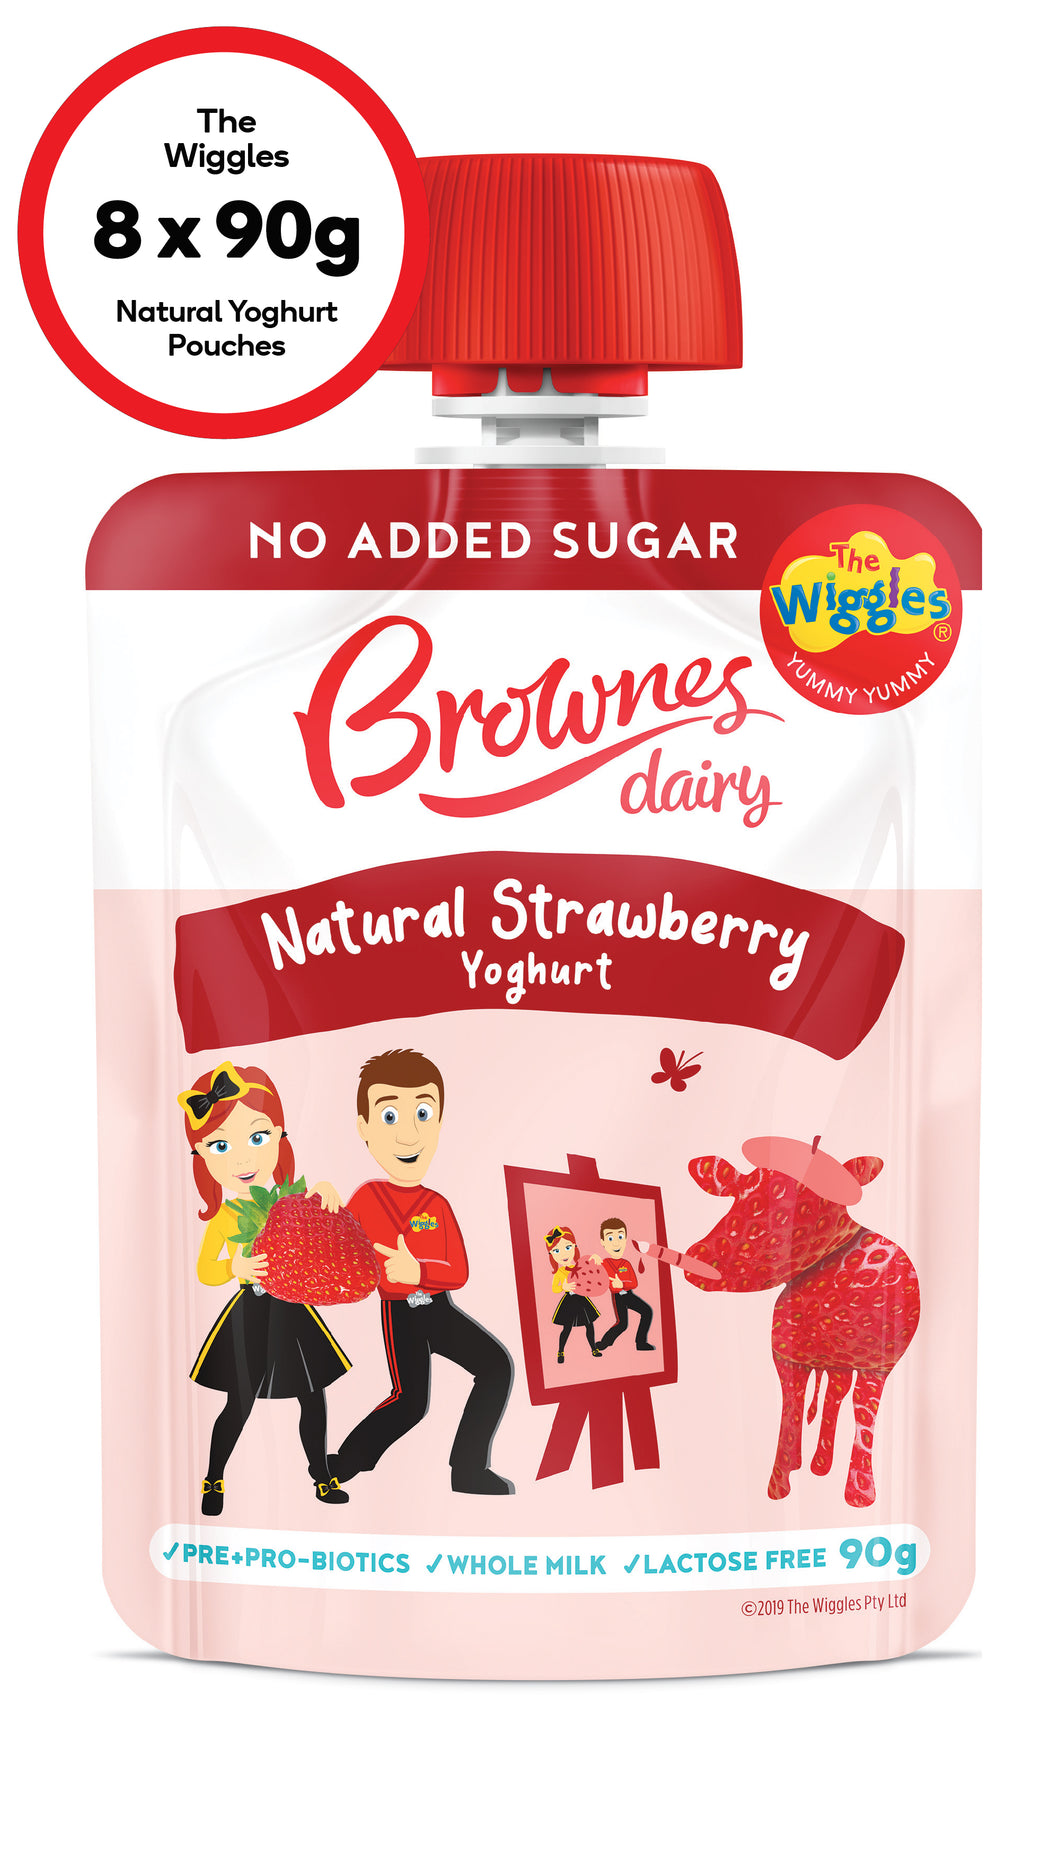 The Wiggles Strawberry Natural Yoghurt (8 x 90g)